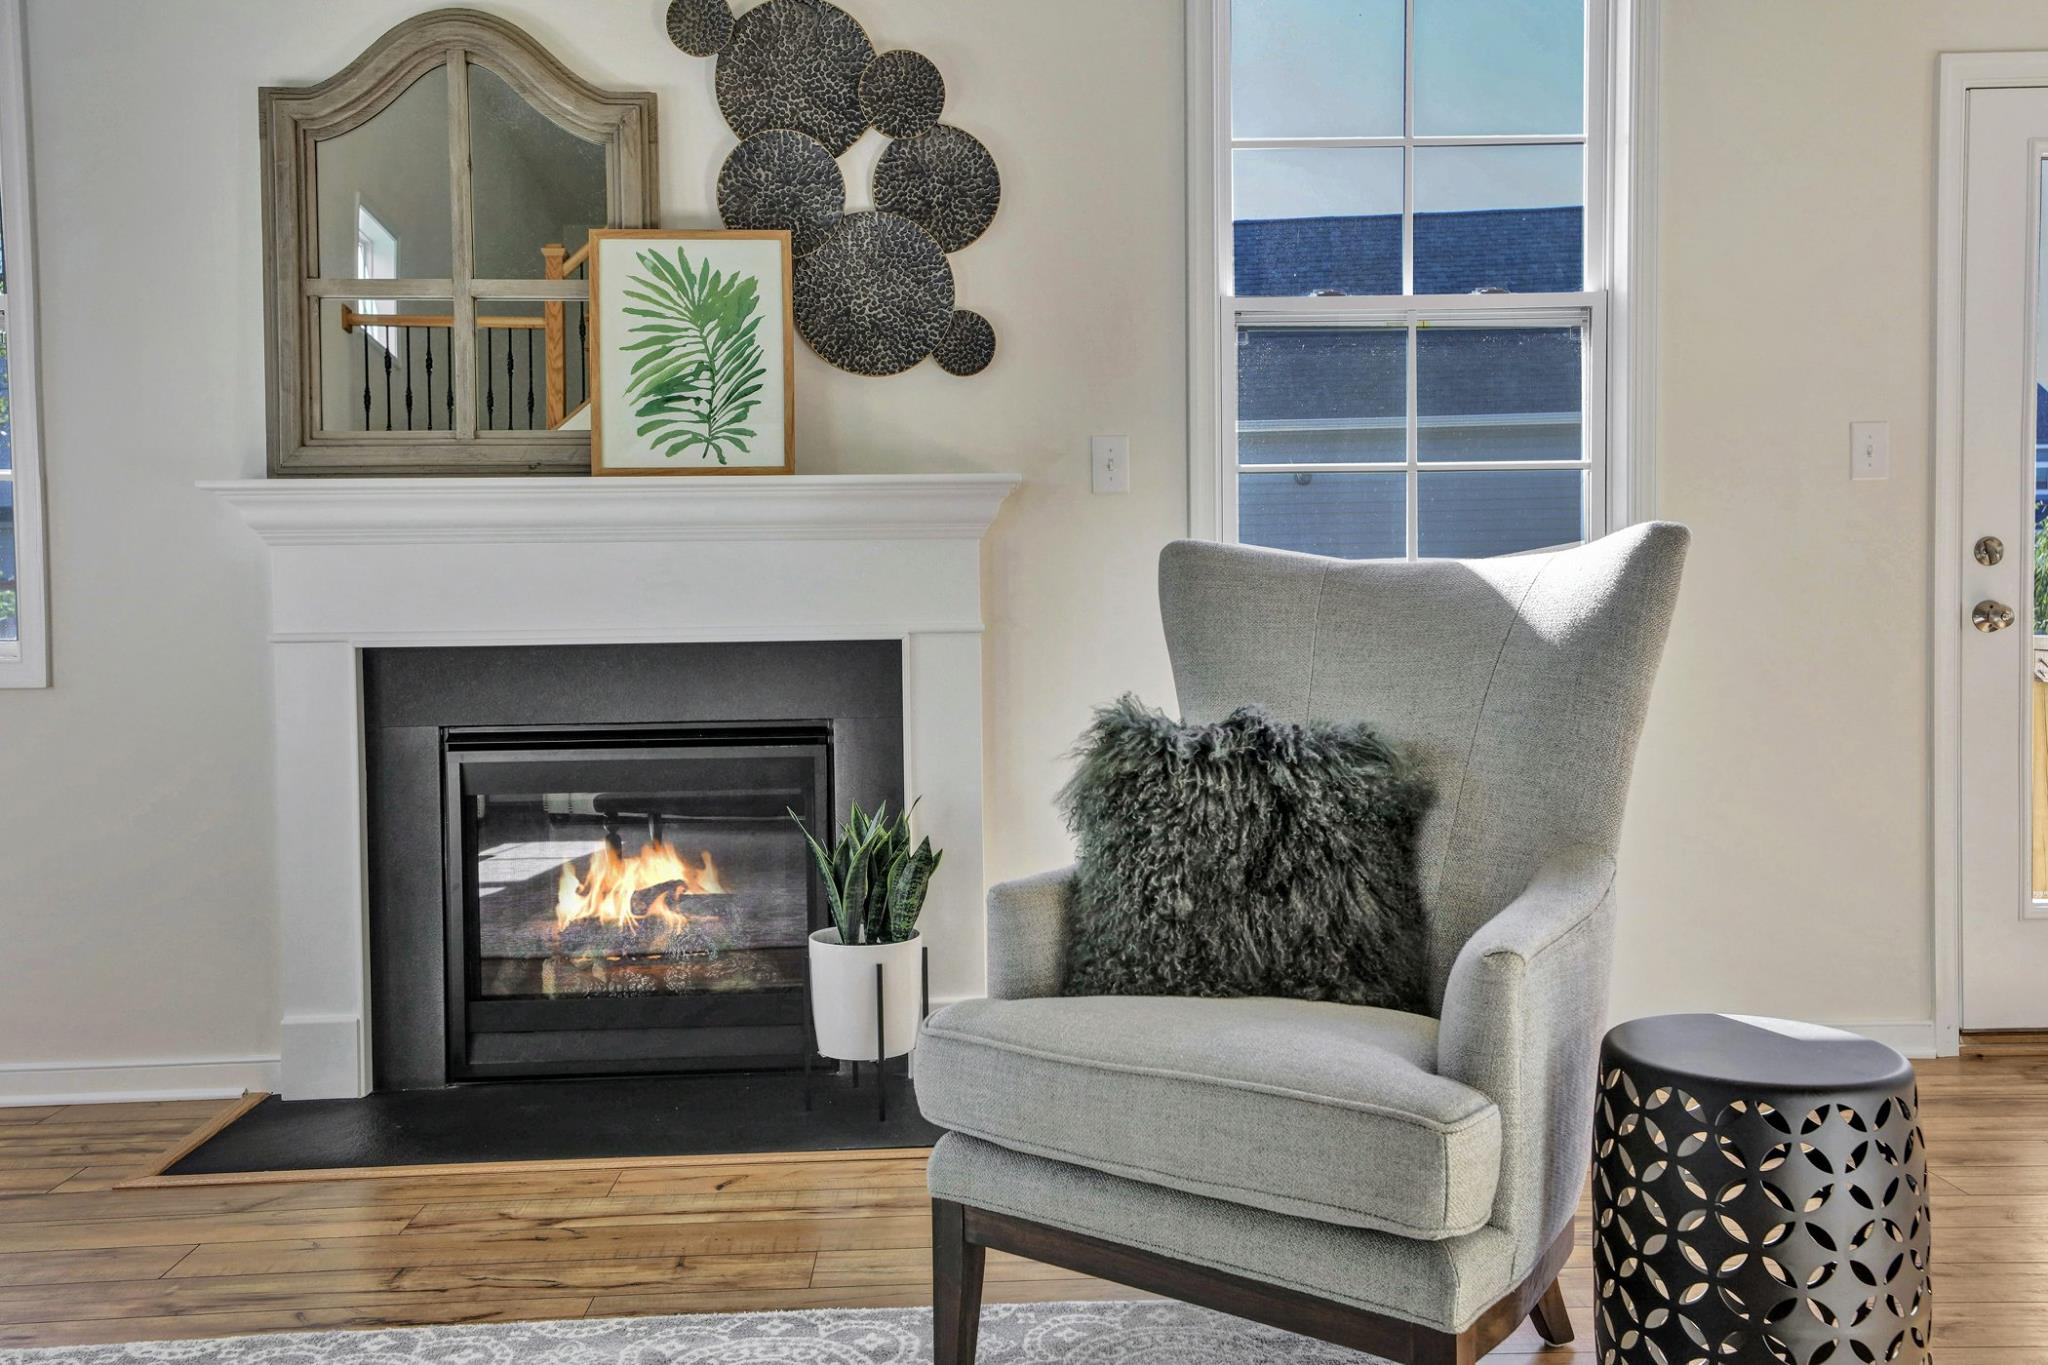 This fireplace showed off its softer side when plants were added to the decor.